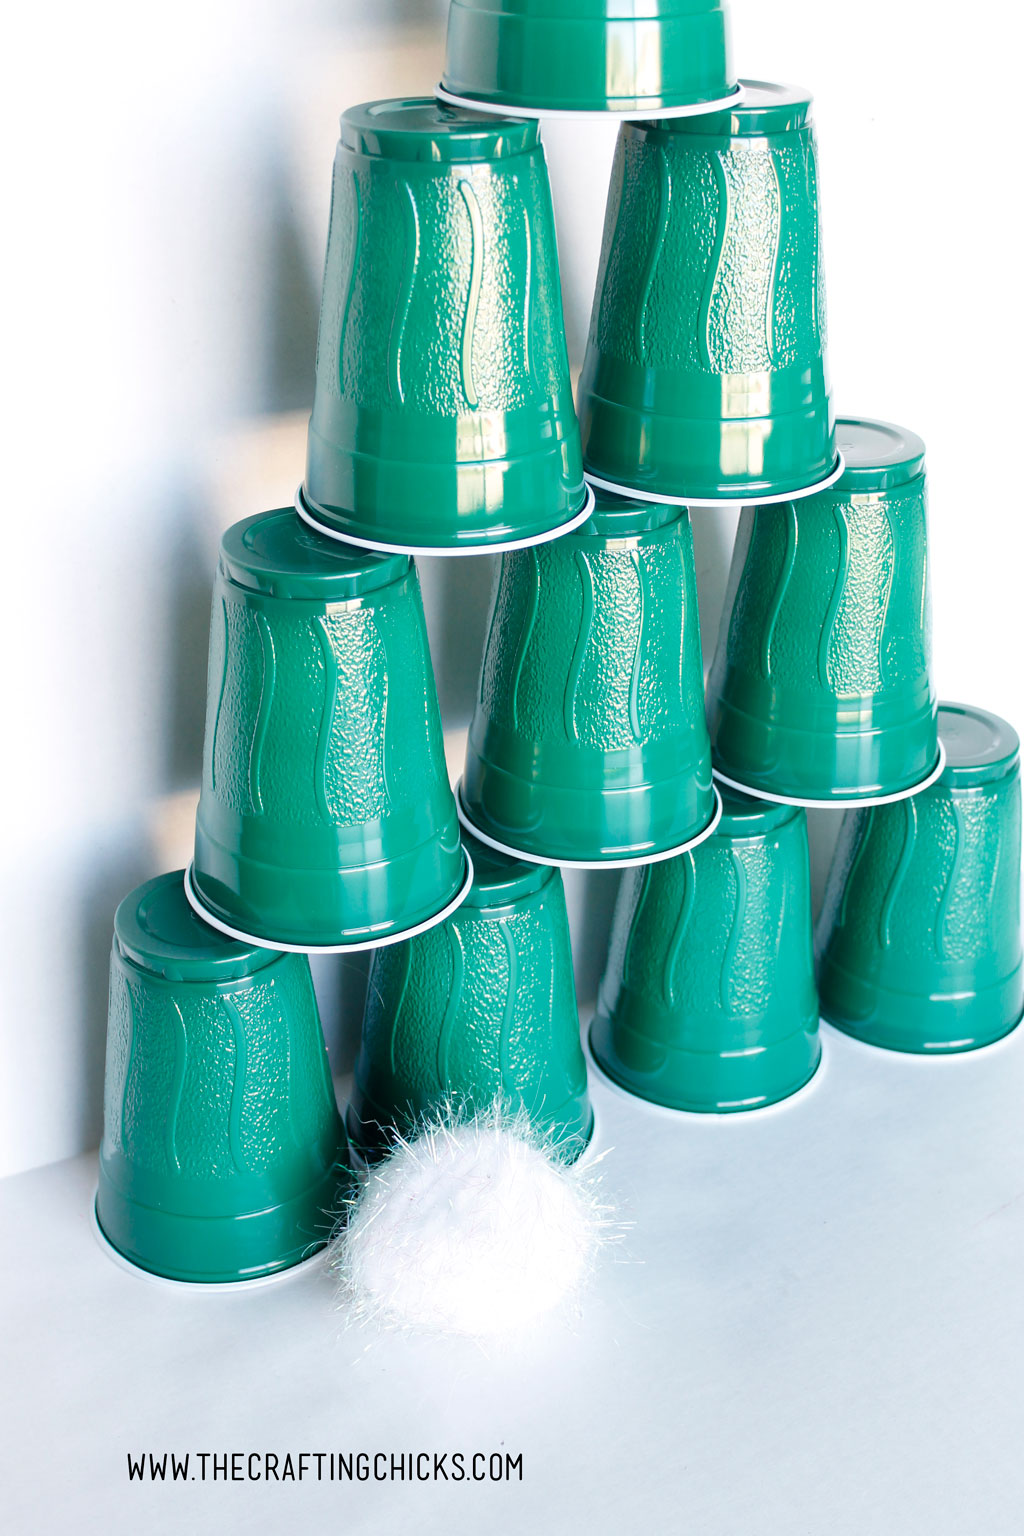 Stacking-Cups-Christmas-Tree-Game2.jpg